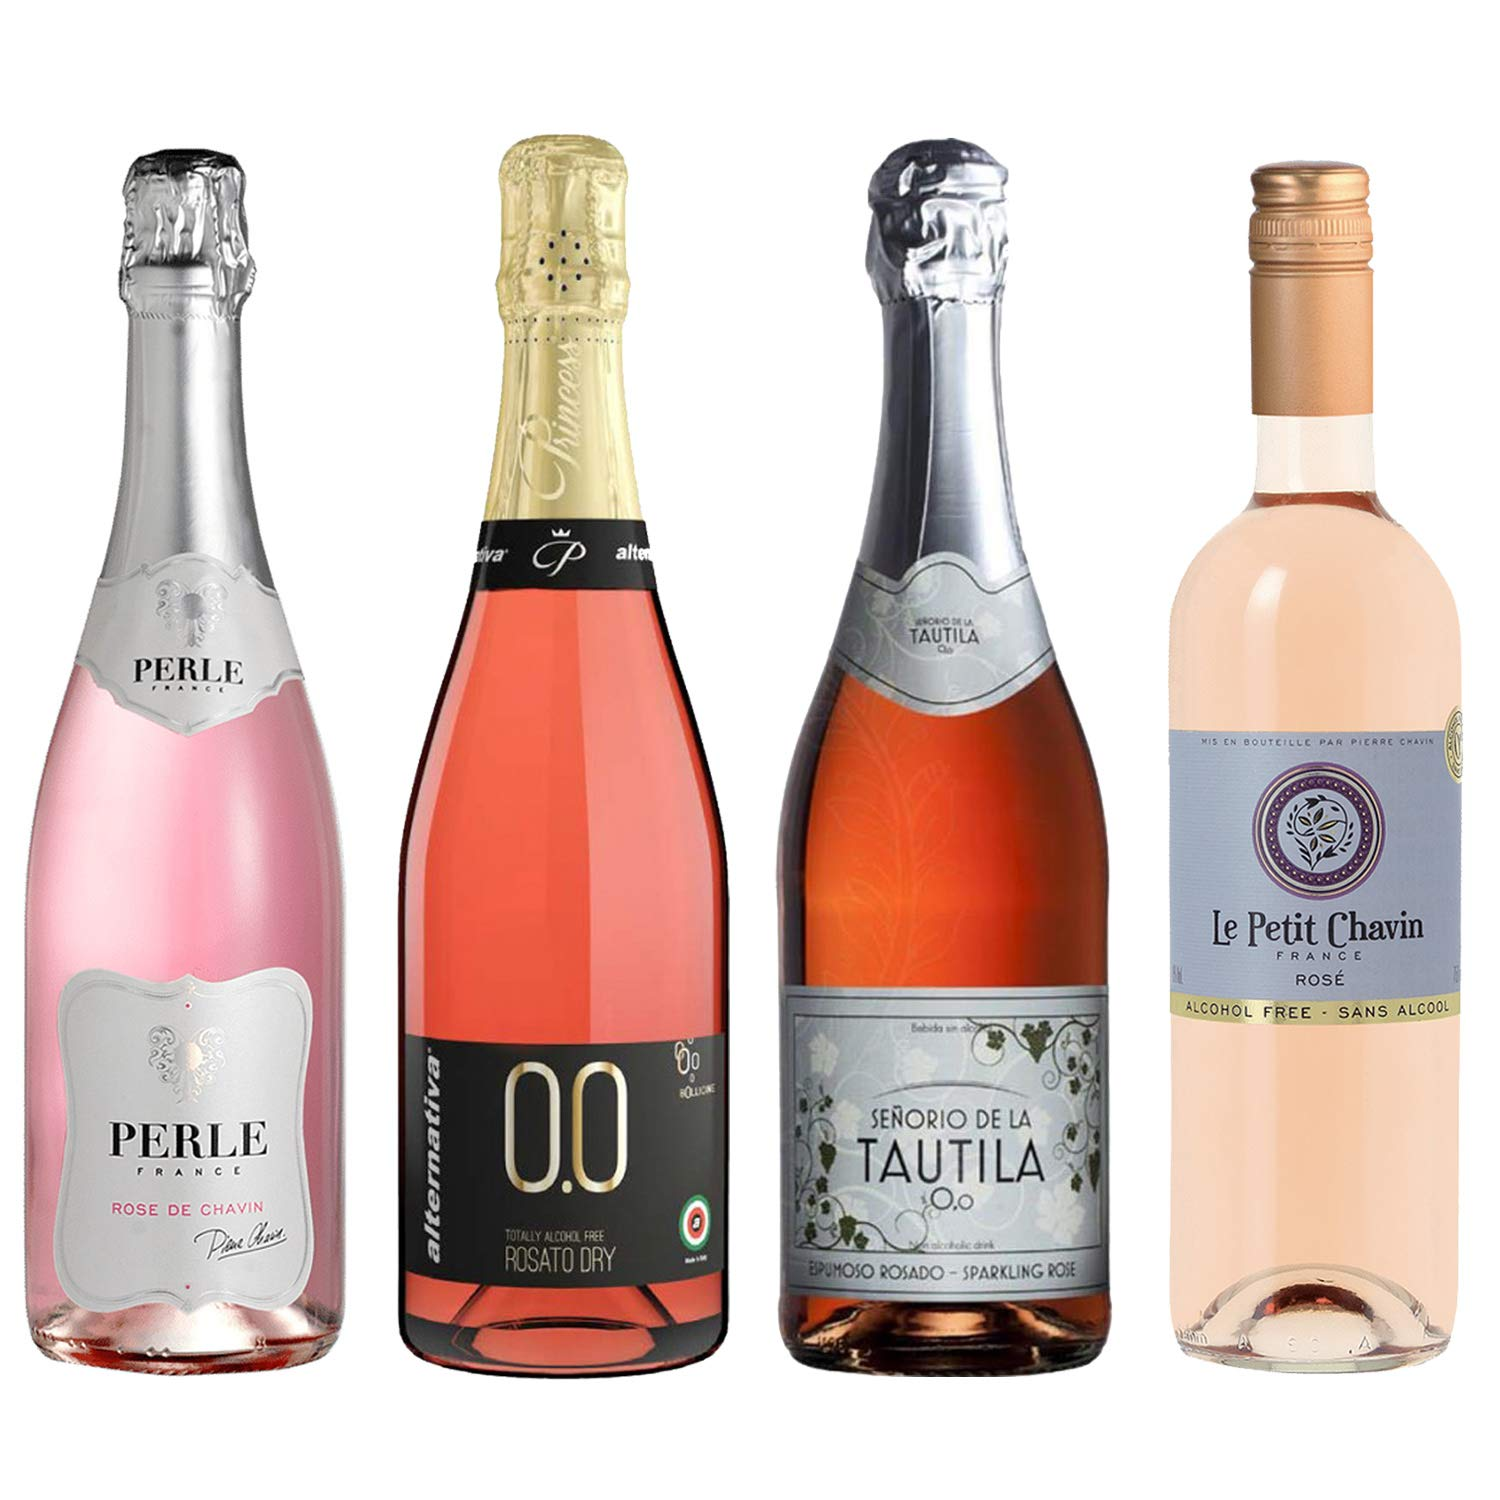 Rose Wine Sampler - Four (4) Non-Alcoholic Wines 750ml Each - Pierre Chavin Perle Rose, Princess Bollicine Rosato Extra Dry, Tautila Espumoso Rosado, and Le Petit Chavin Rose. by Various Wineries (Image #1)